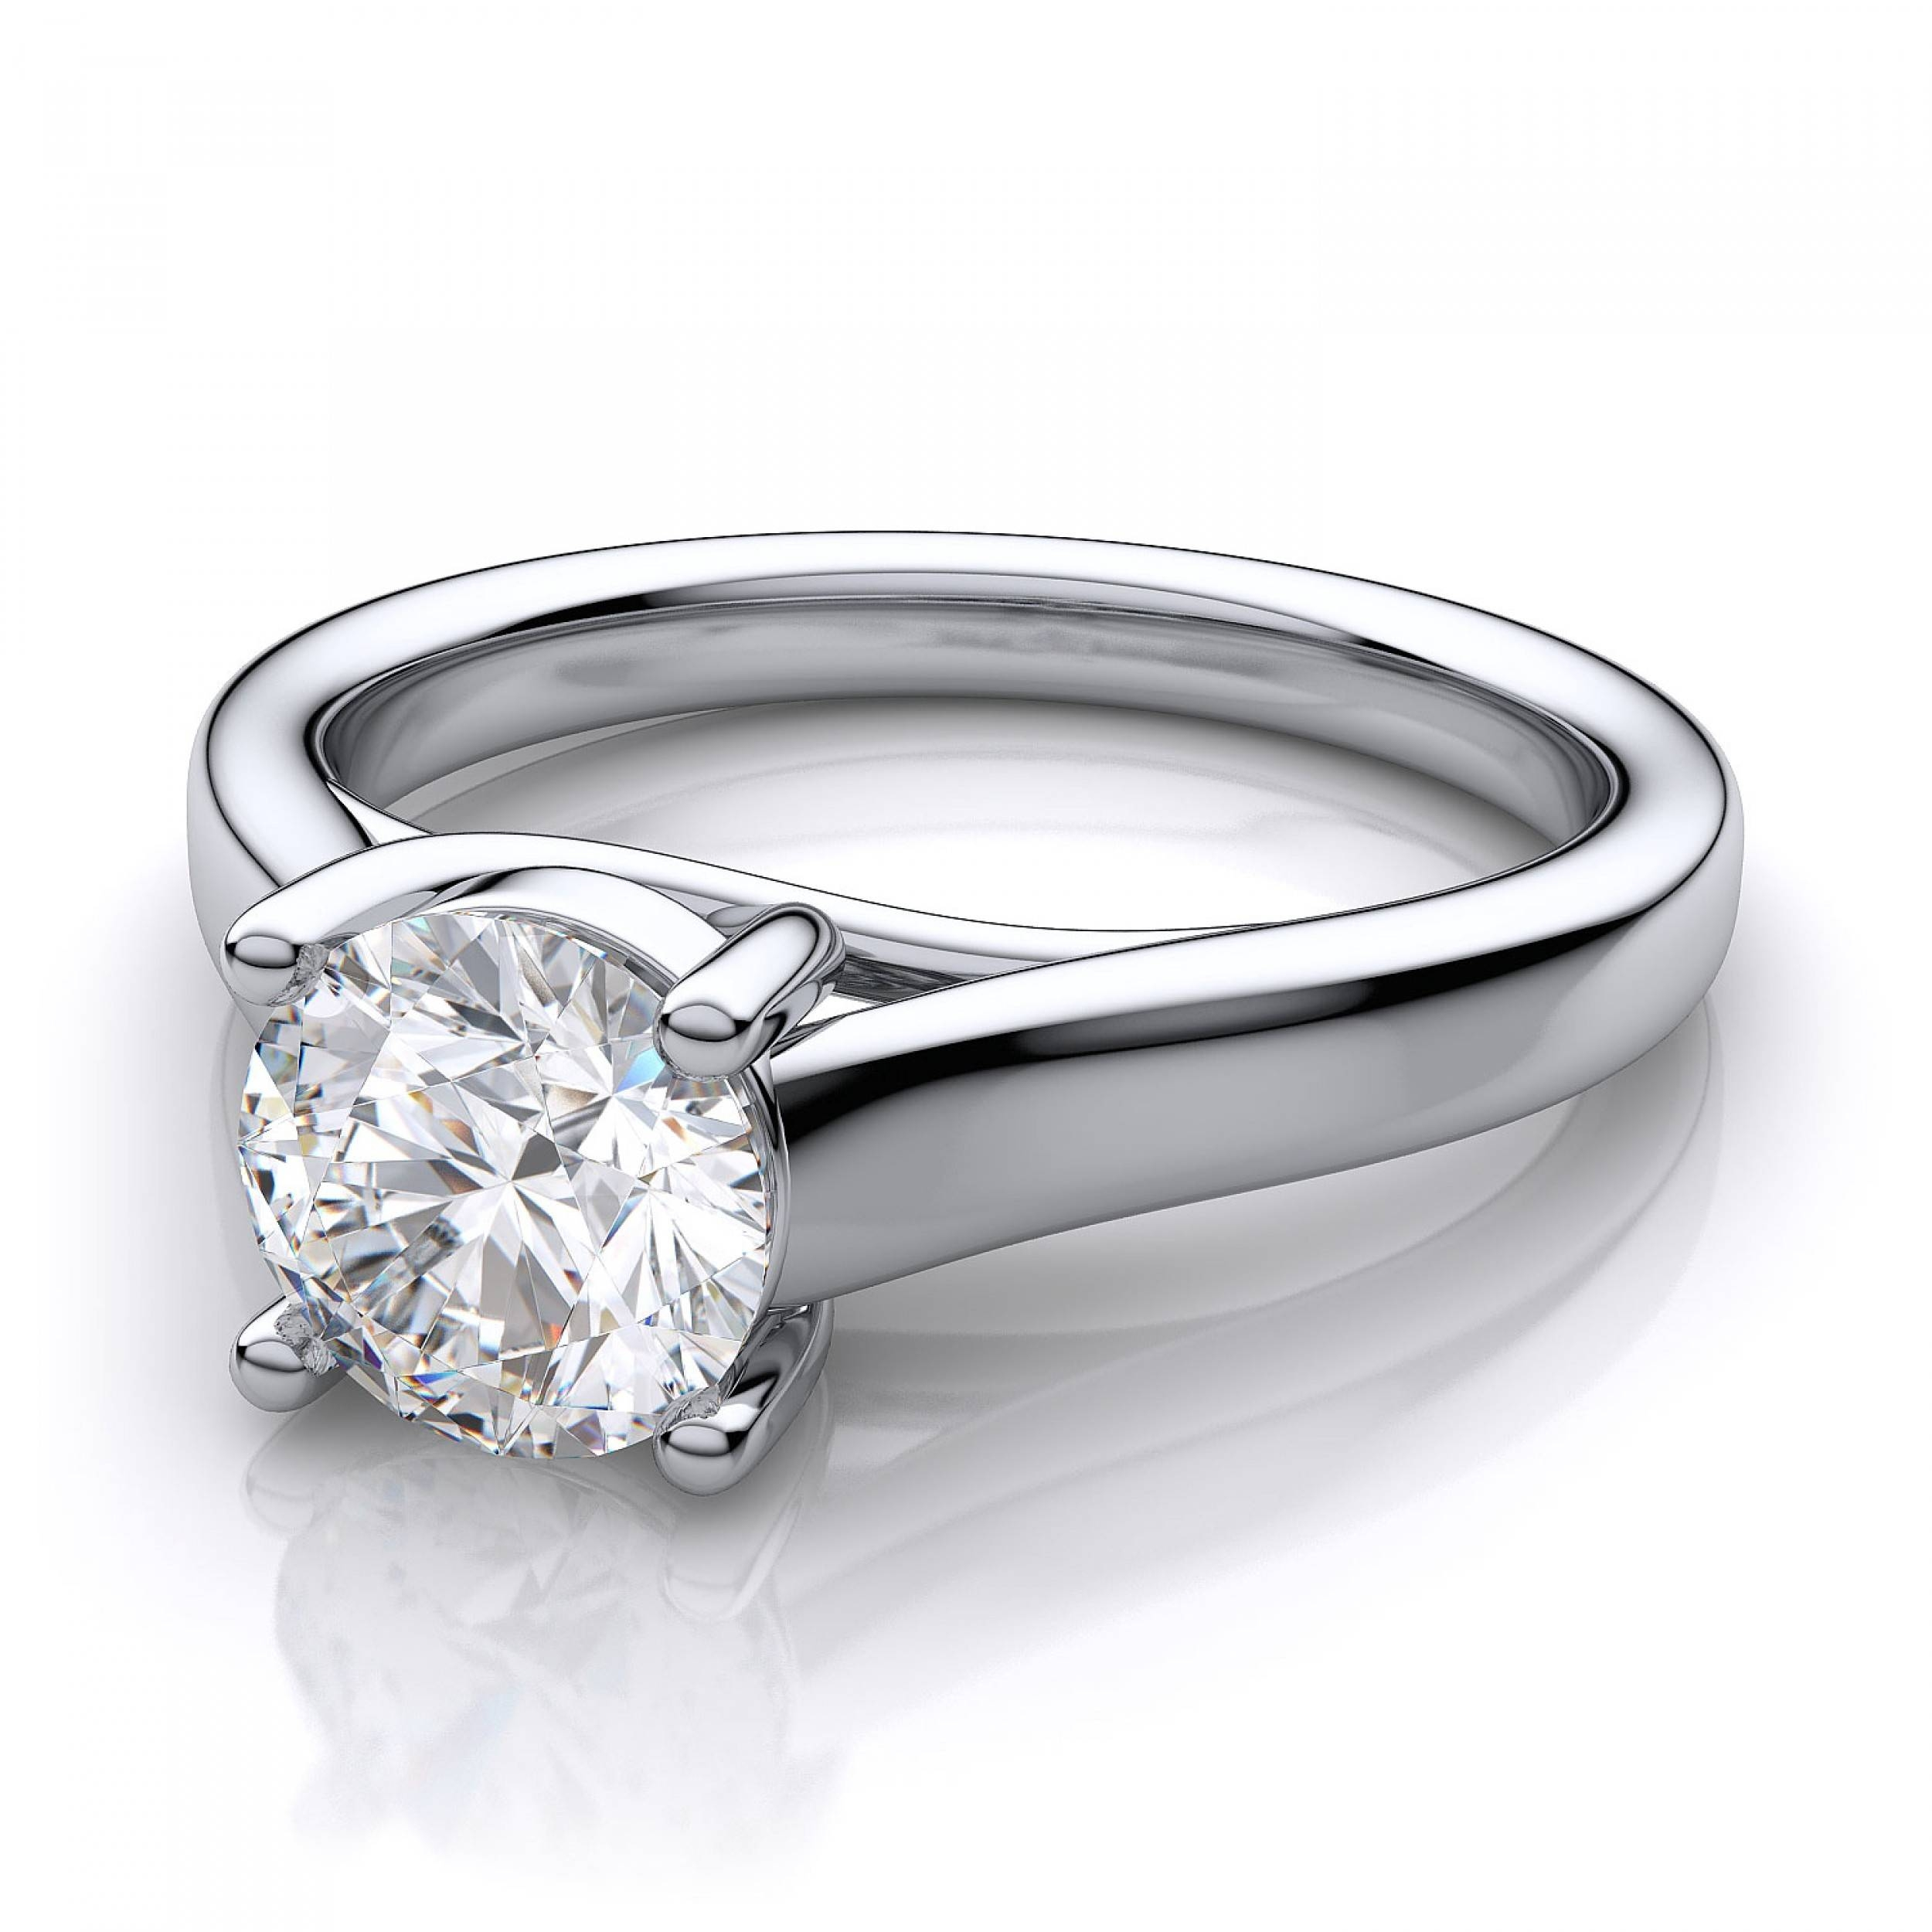 Solitaire Engagement Ring – 14K White Gold With Regard To Diamond Solitaire Wedding Rings (View 15 of 15)